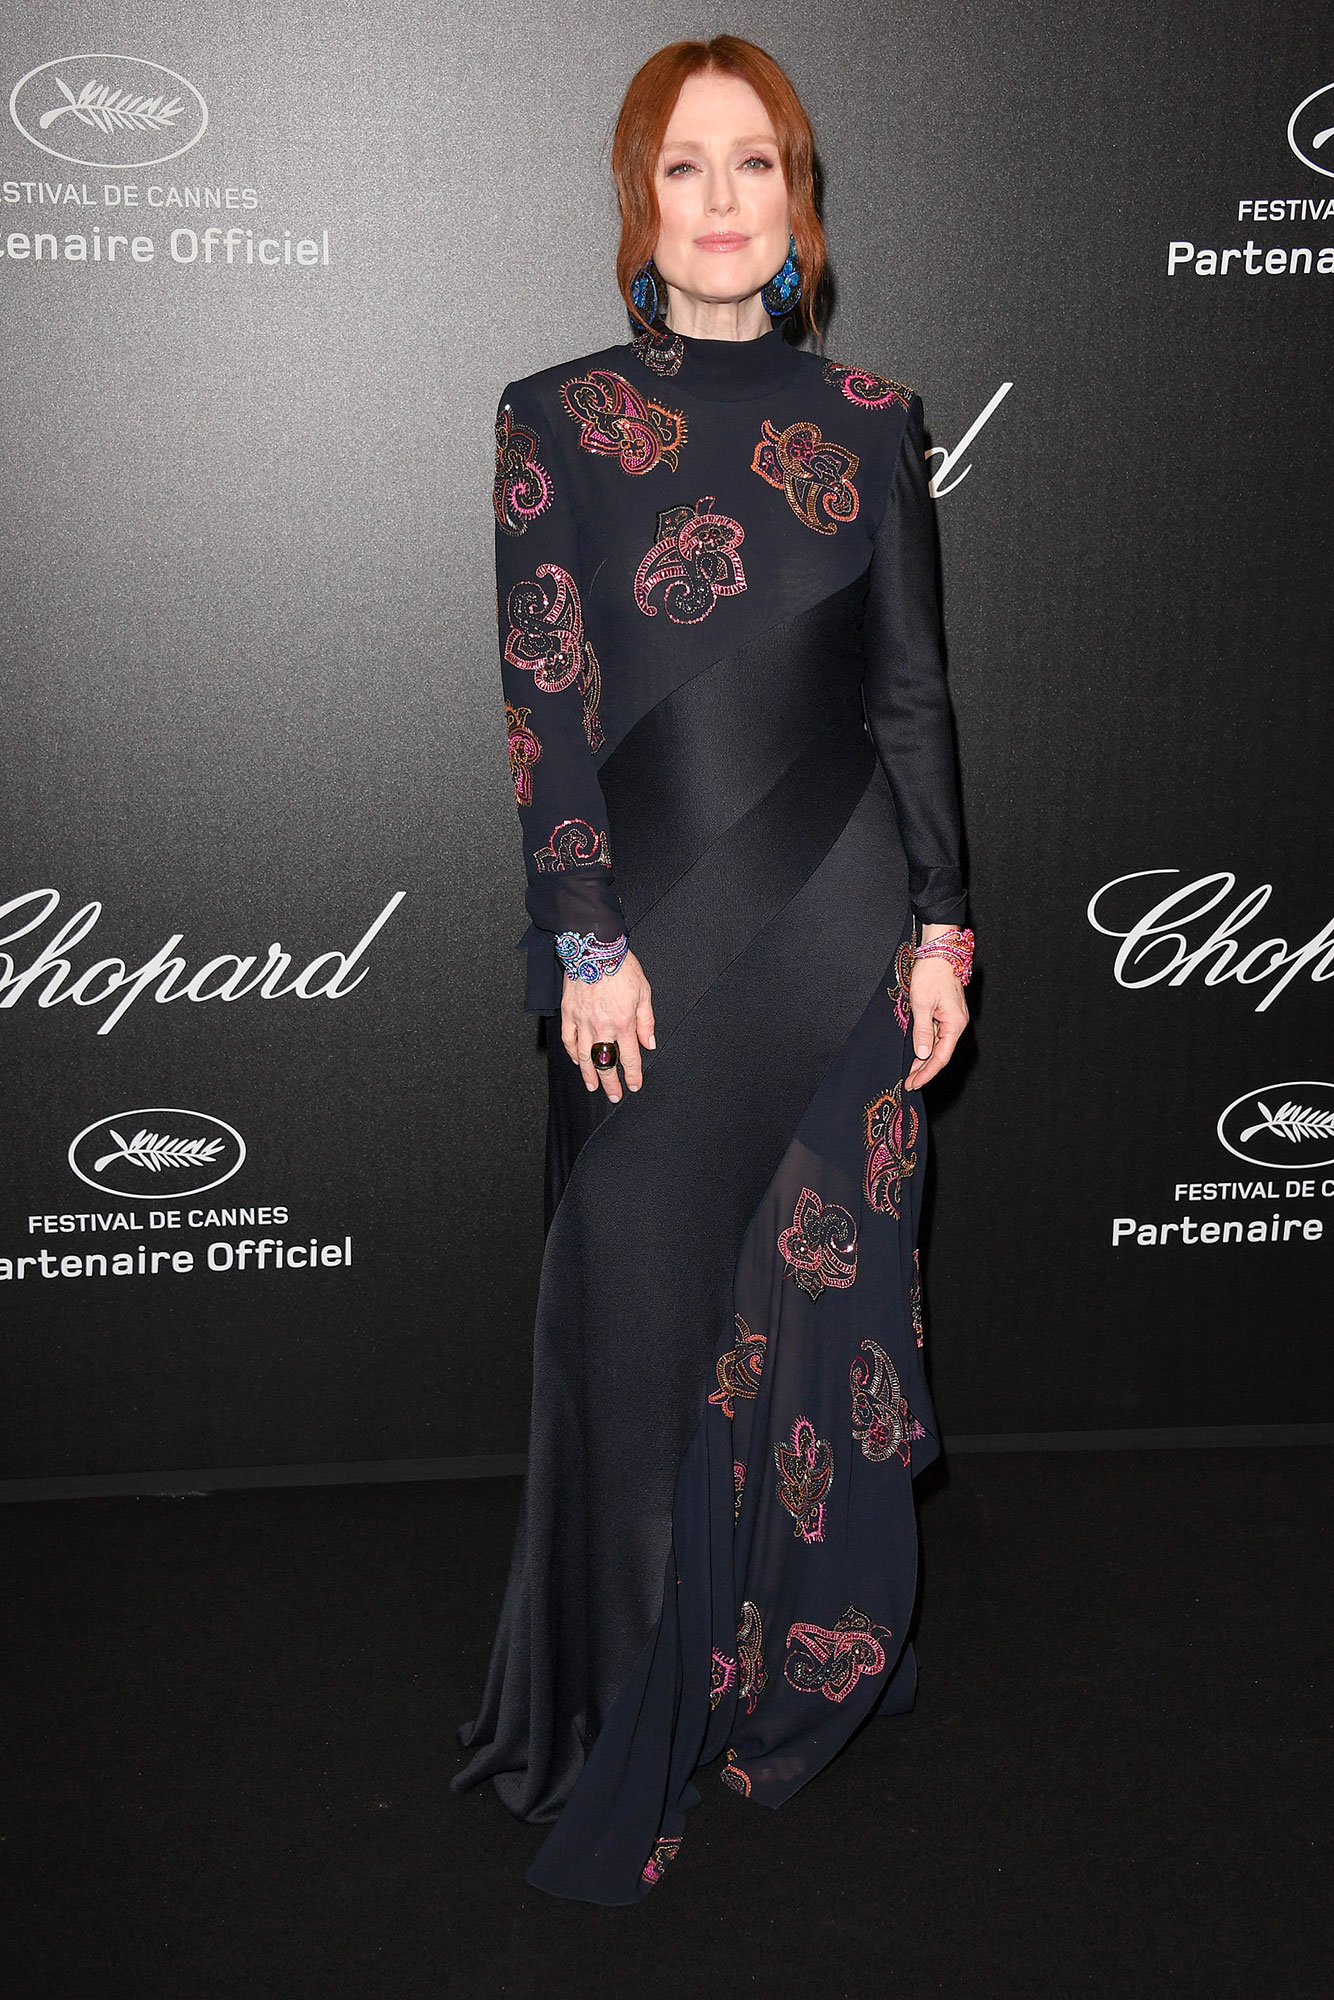 Julianne Moore Stepping Out in Style at Cannes Film Festival - Colorful Chopard jewels were the perfect complement to the actress' embellished Chloe gown at the Chopard Party on Friday, May 17.